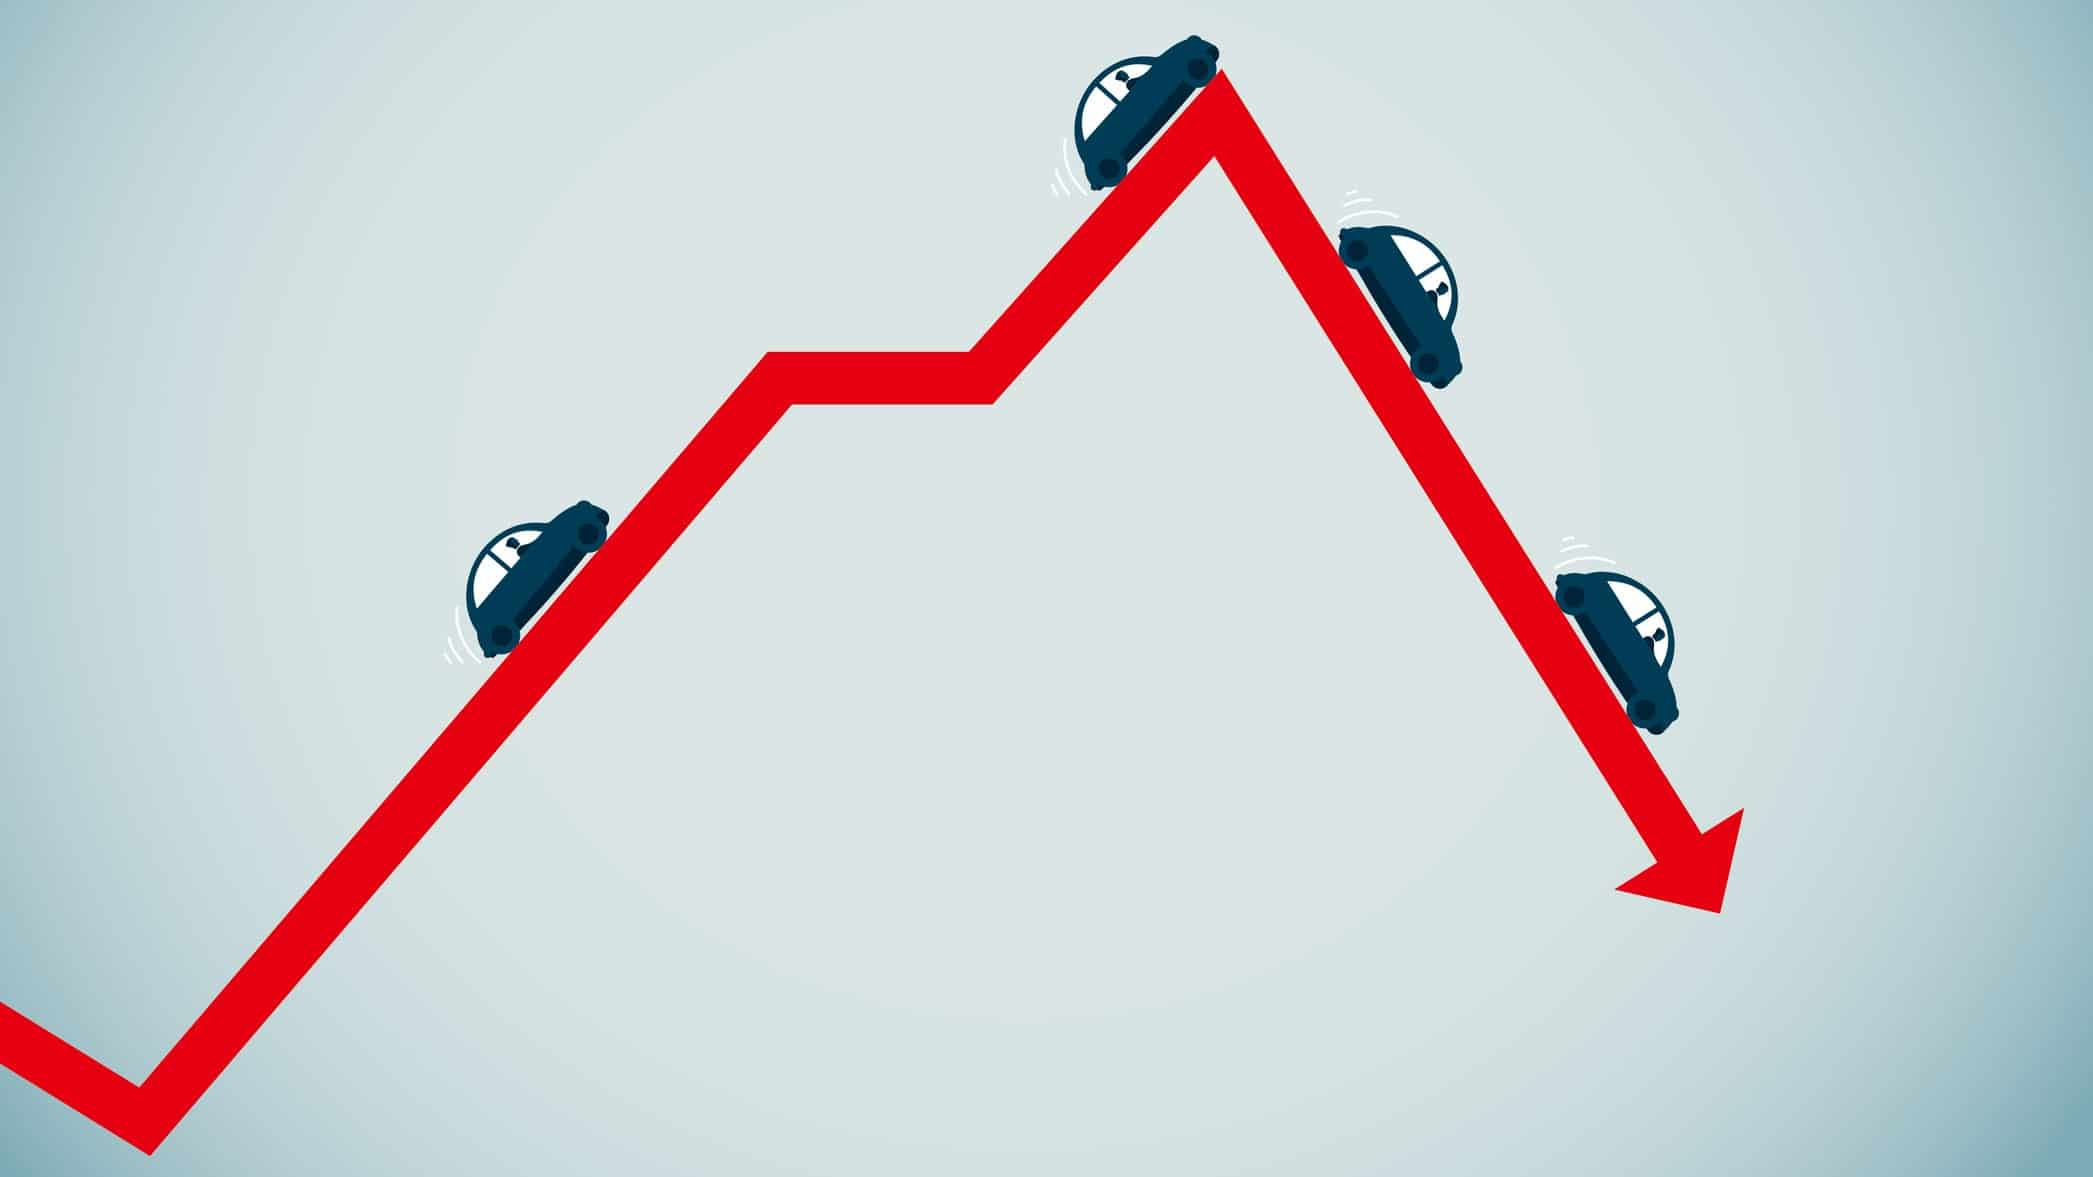 asx share price fall represented by cars driving along a downward red arrow